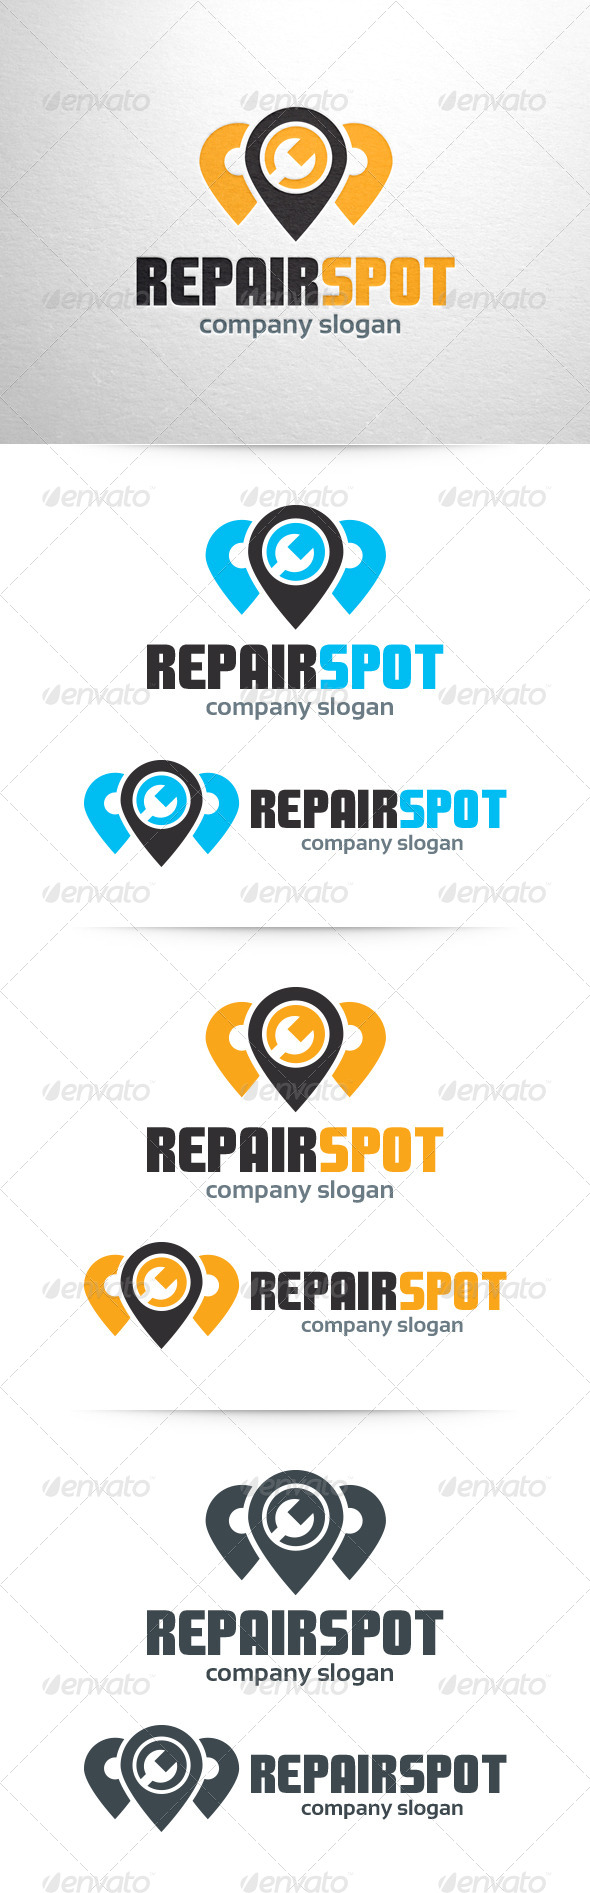 GraphicRiver Repair Spot Logo Template 6470409